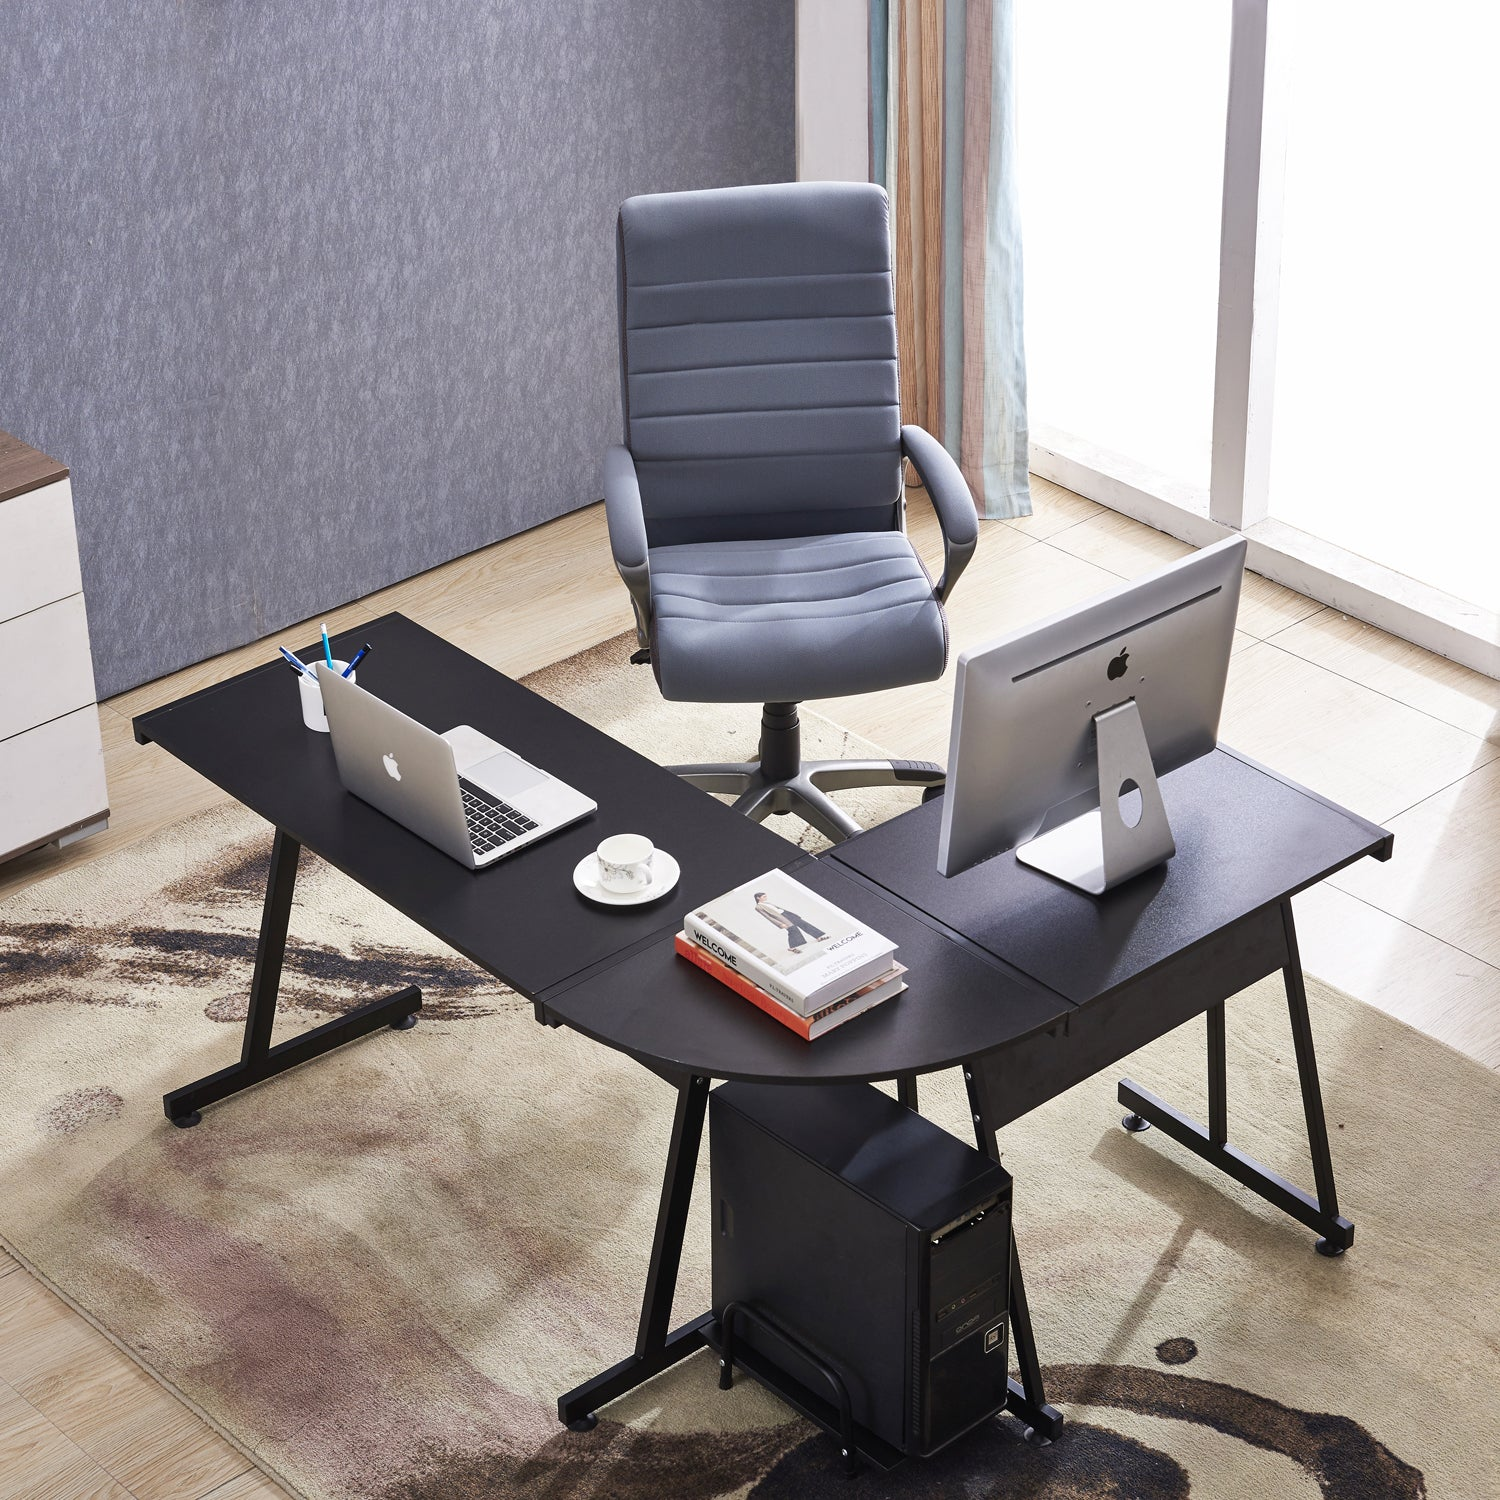 Office Desk Corner L Shaped Workstation Laptop Table With Keyboard Tra Mcombo